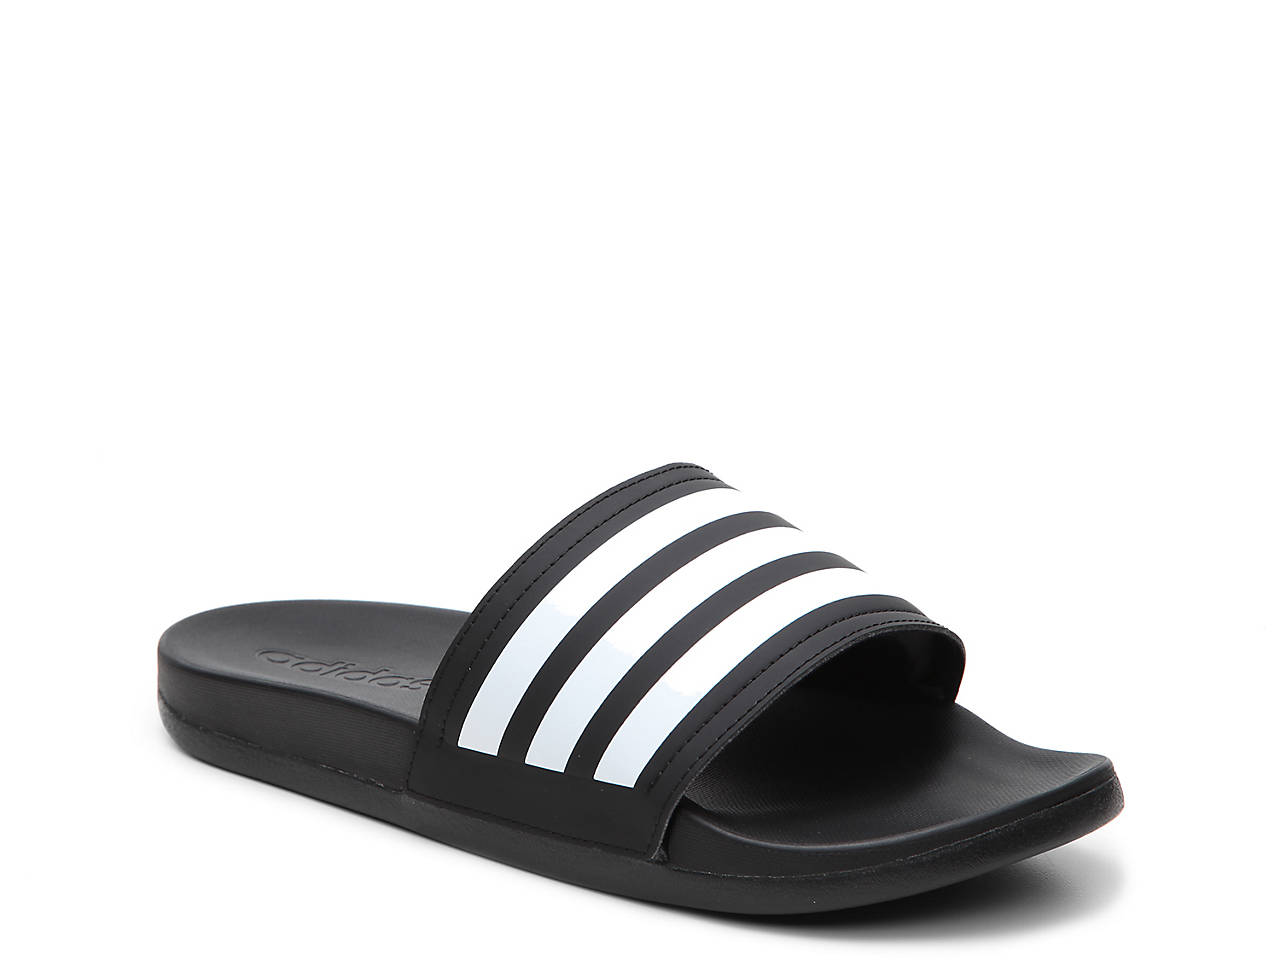 c3dcea8fb7396 adidas Adilette Cloudfoam Ultra Stripes Slide Sandal - Women s ...